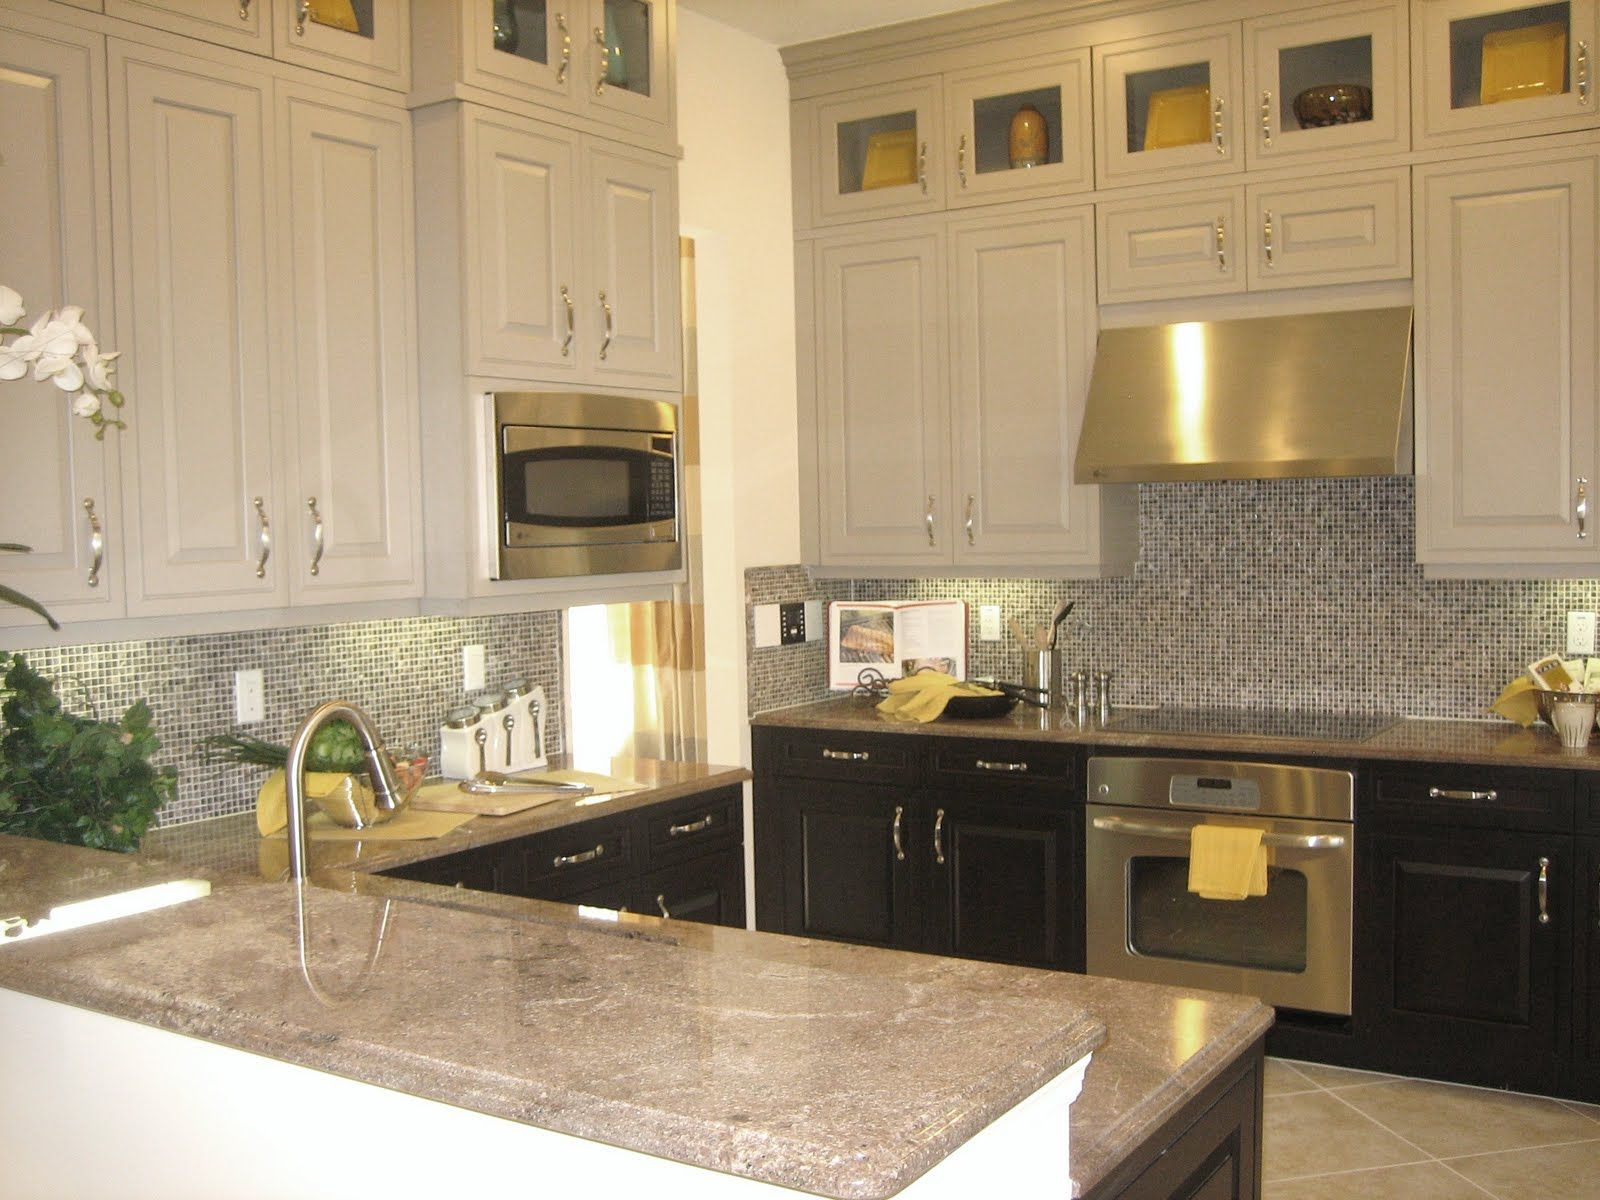 Of Kitchen Furniture I Like This Look Alot Love How The Backsplash Ties To The Two